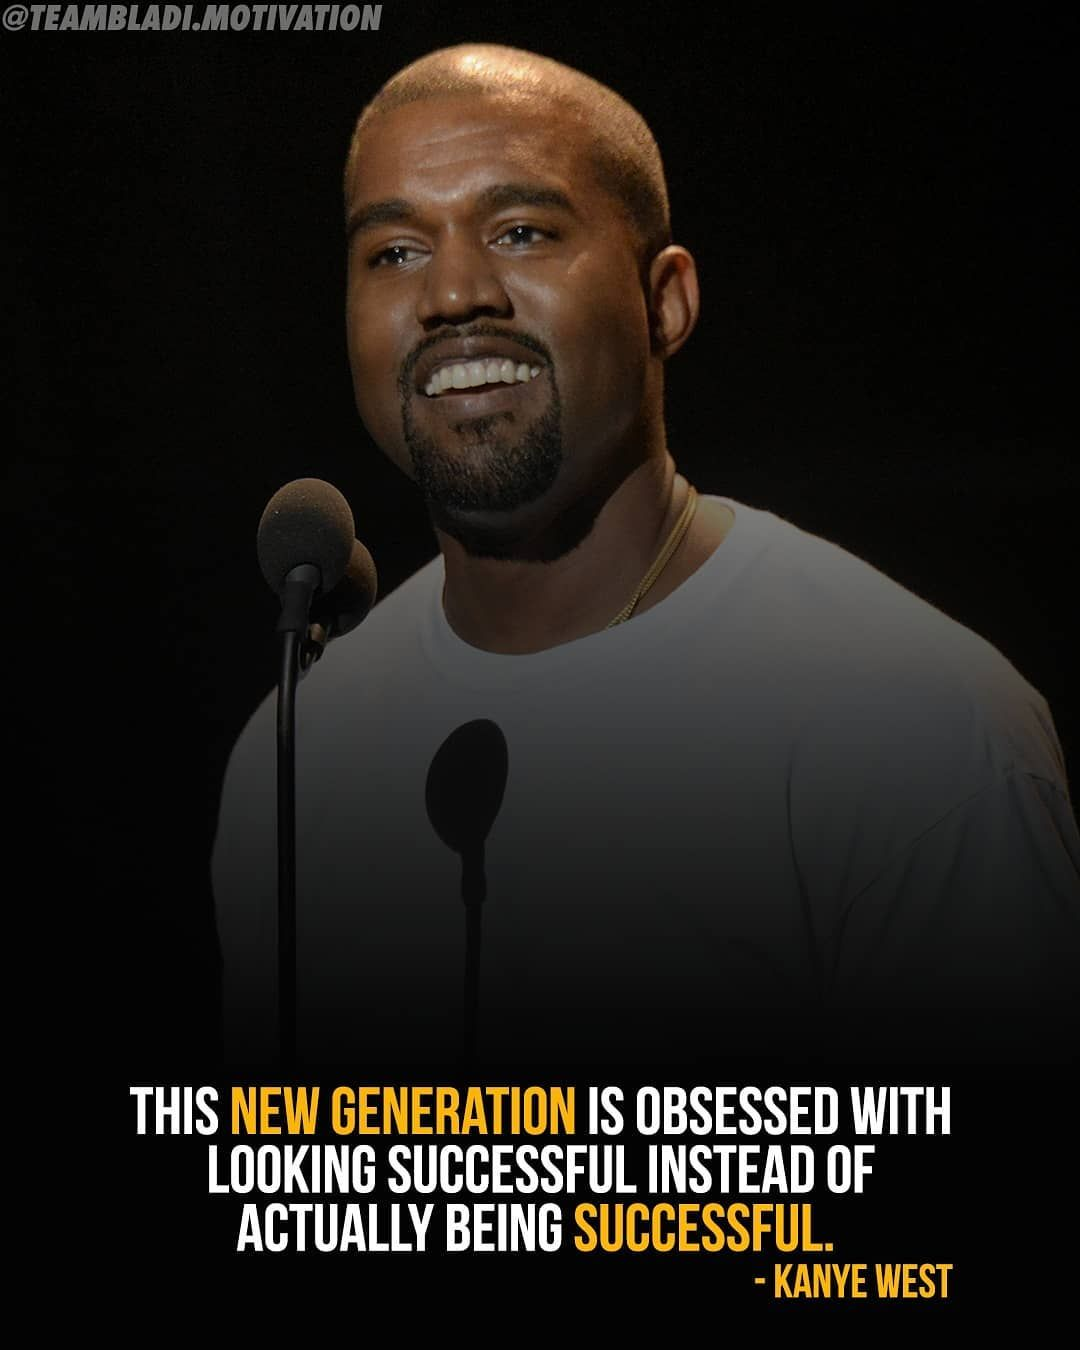 This Generation Is Obsessed With Looking Successful Instead Of Actually Being Successful Nbsp Nbsp Kanyewest Nbsp Nbsp Motivation Success Generation